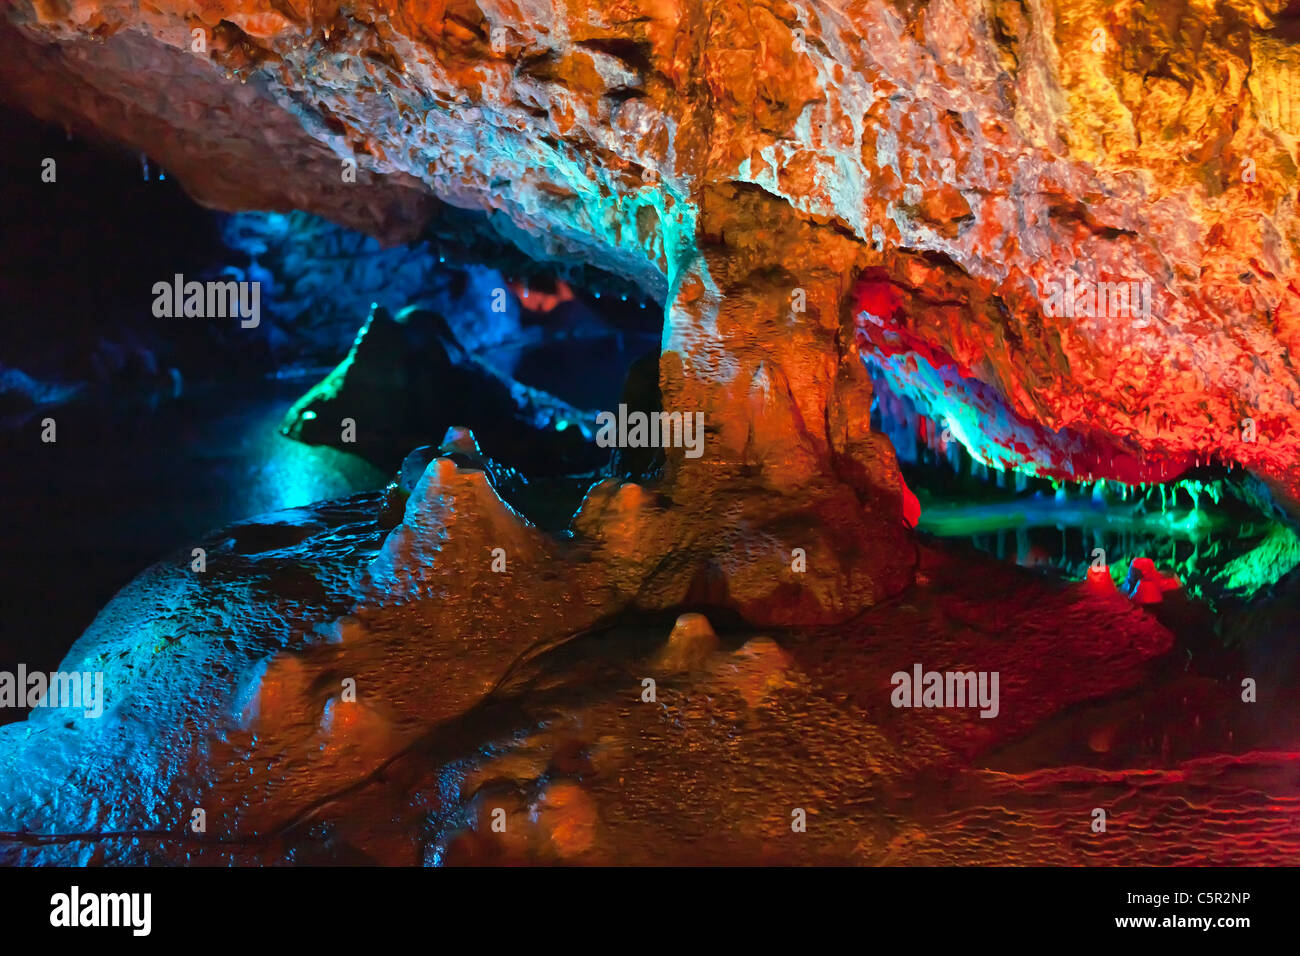 Spotlit cave formations at Wookey Hole - Stock Image